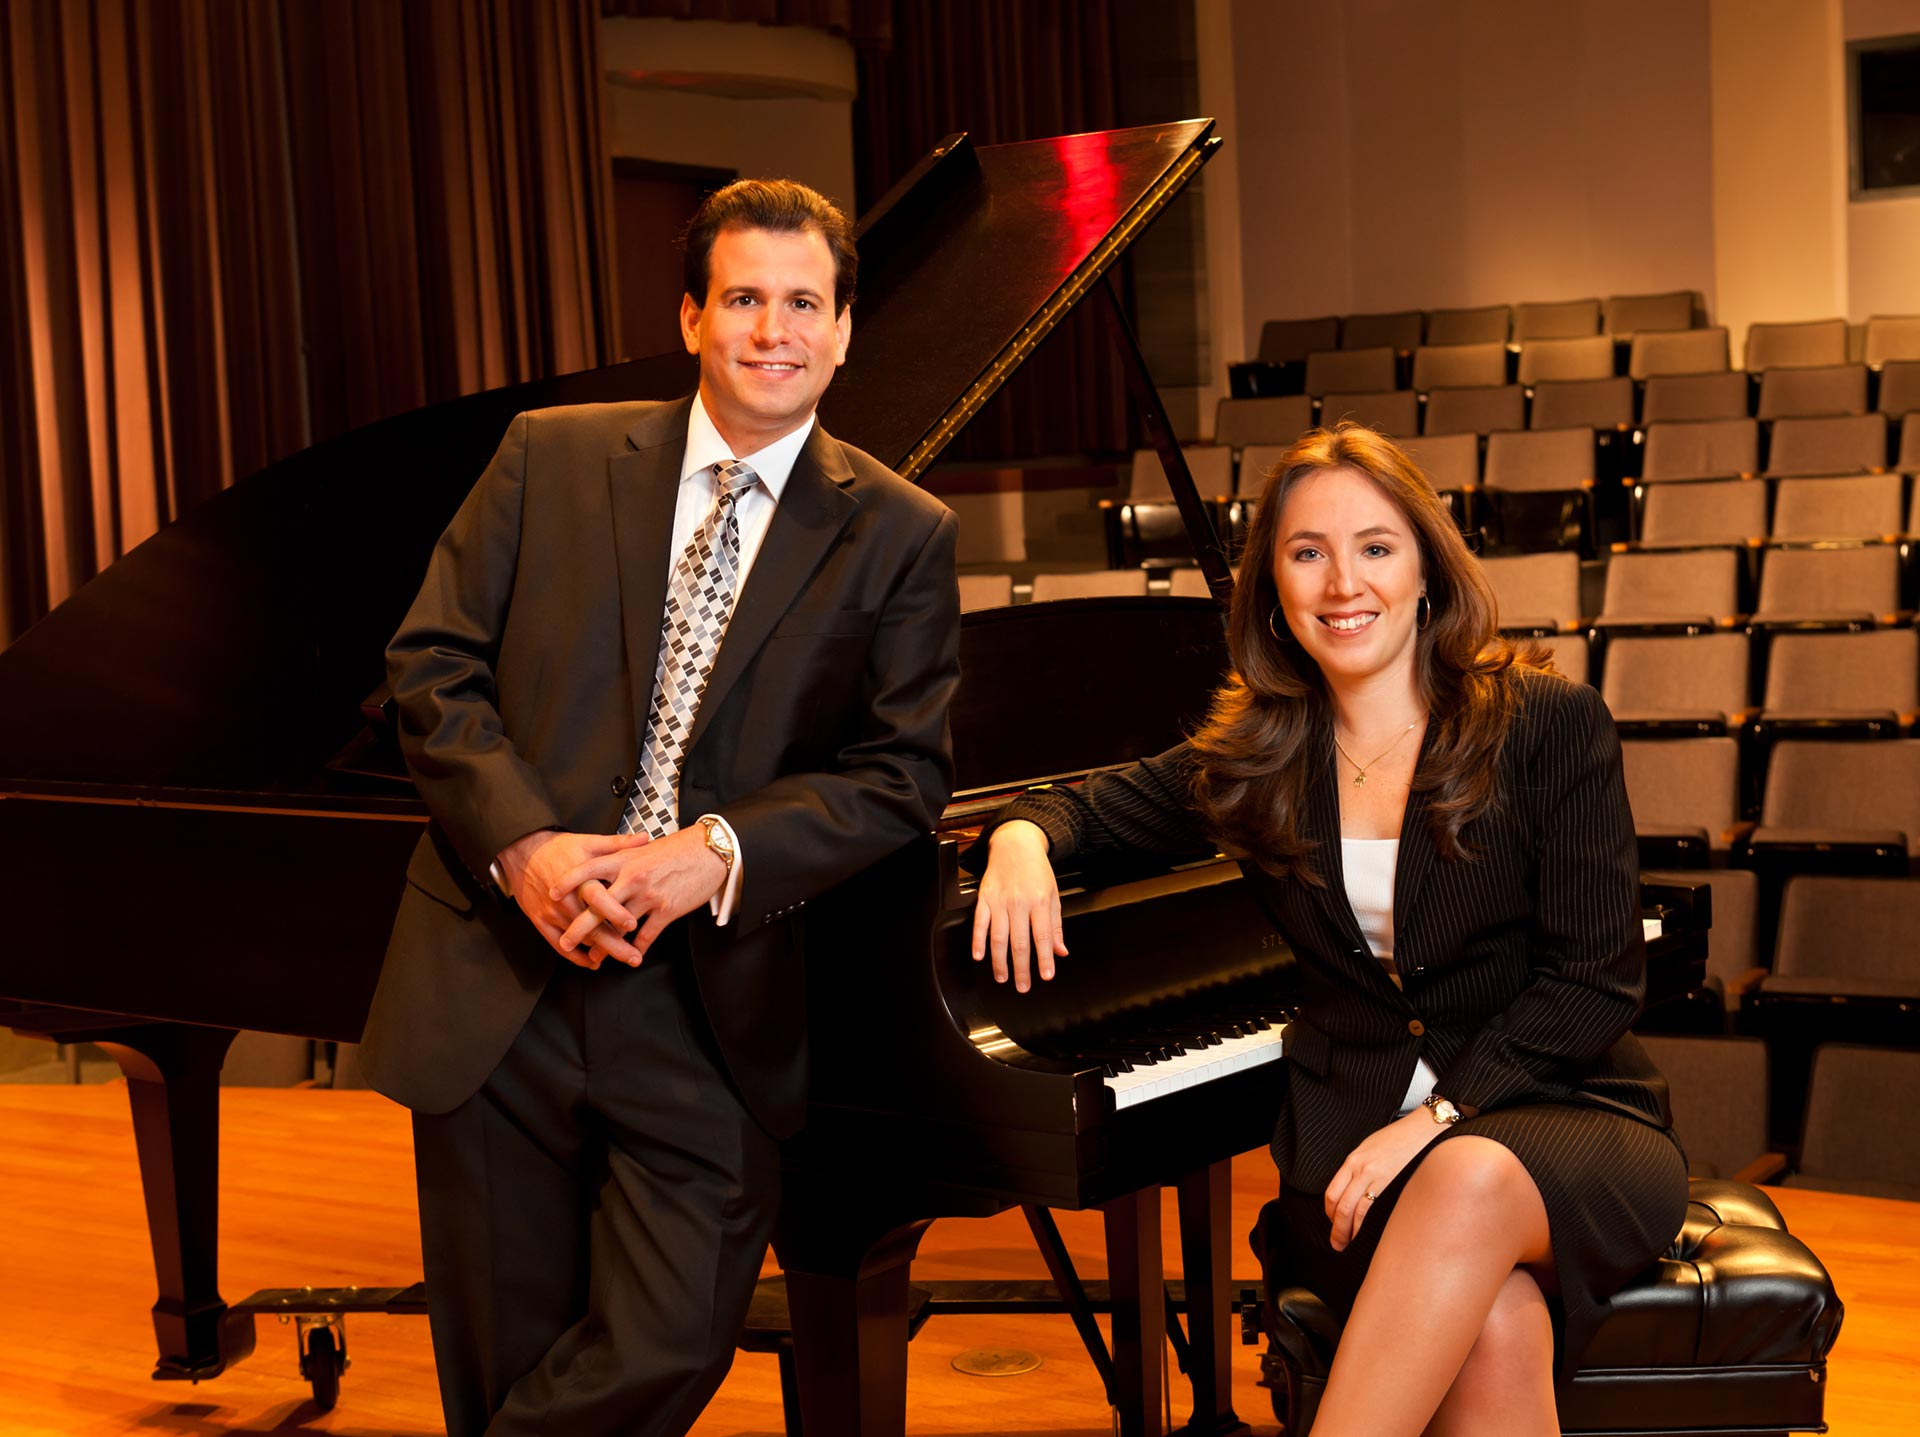 Latin American pianists Dr. Fabiana Claure and Dr. William Villaverde